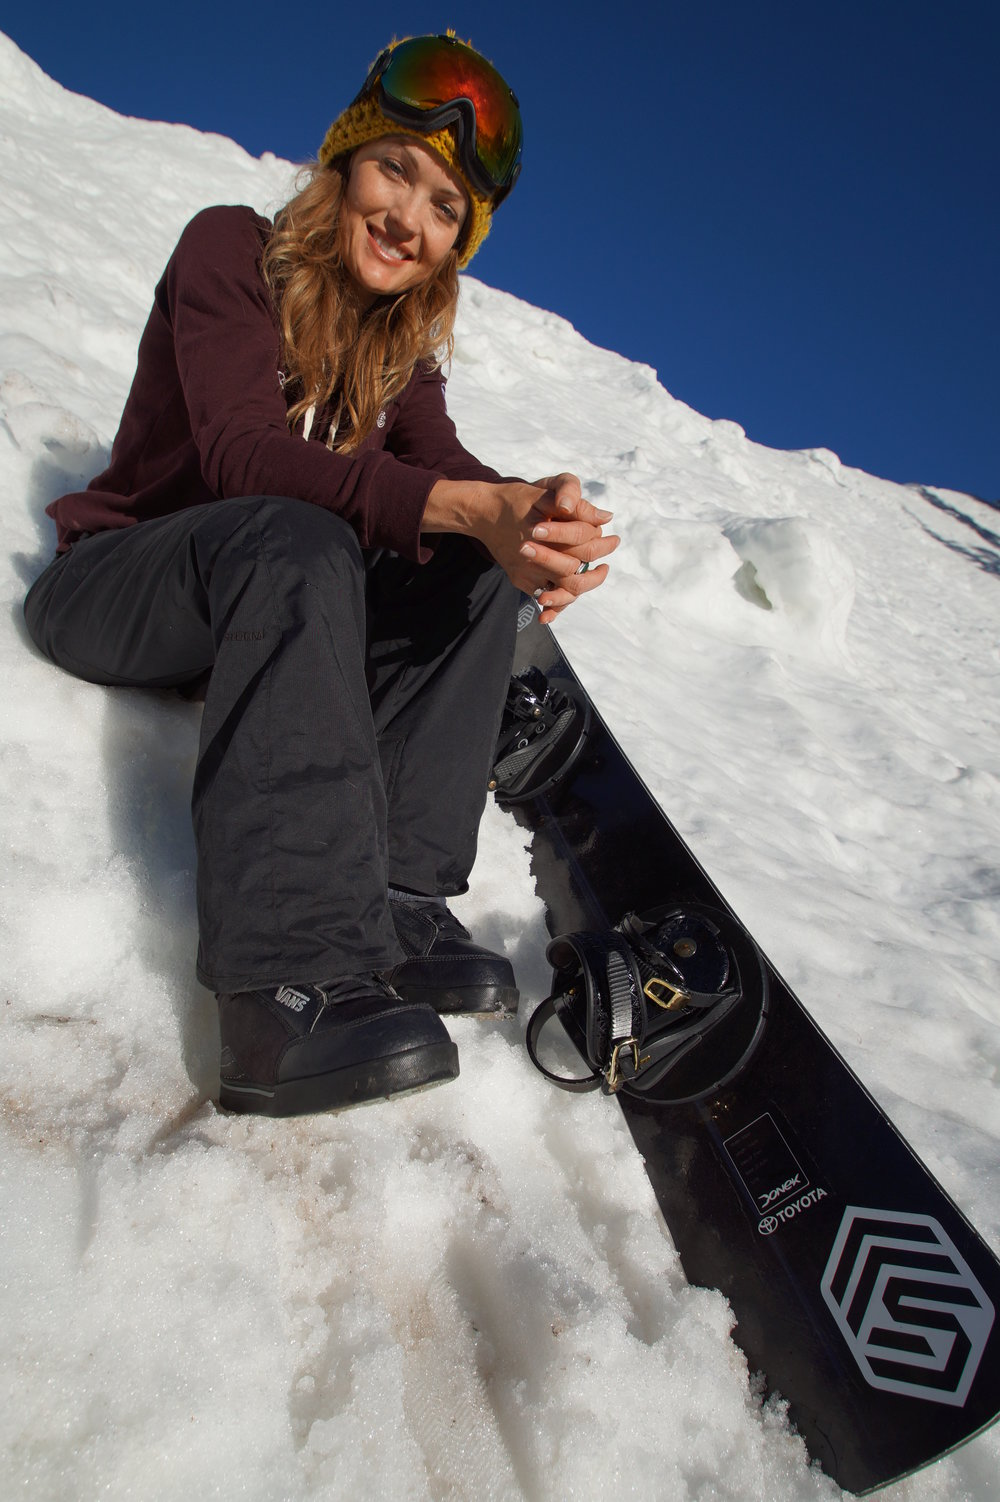 Amy purdy, World class snowboarder, motivational speaker